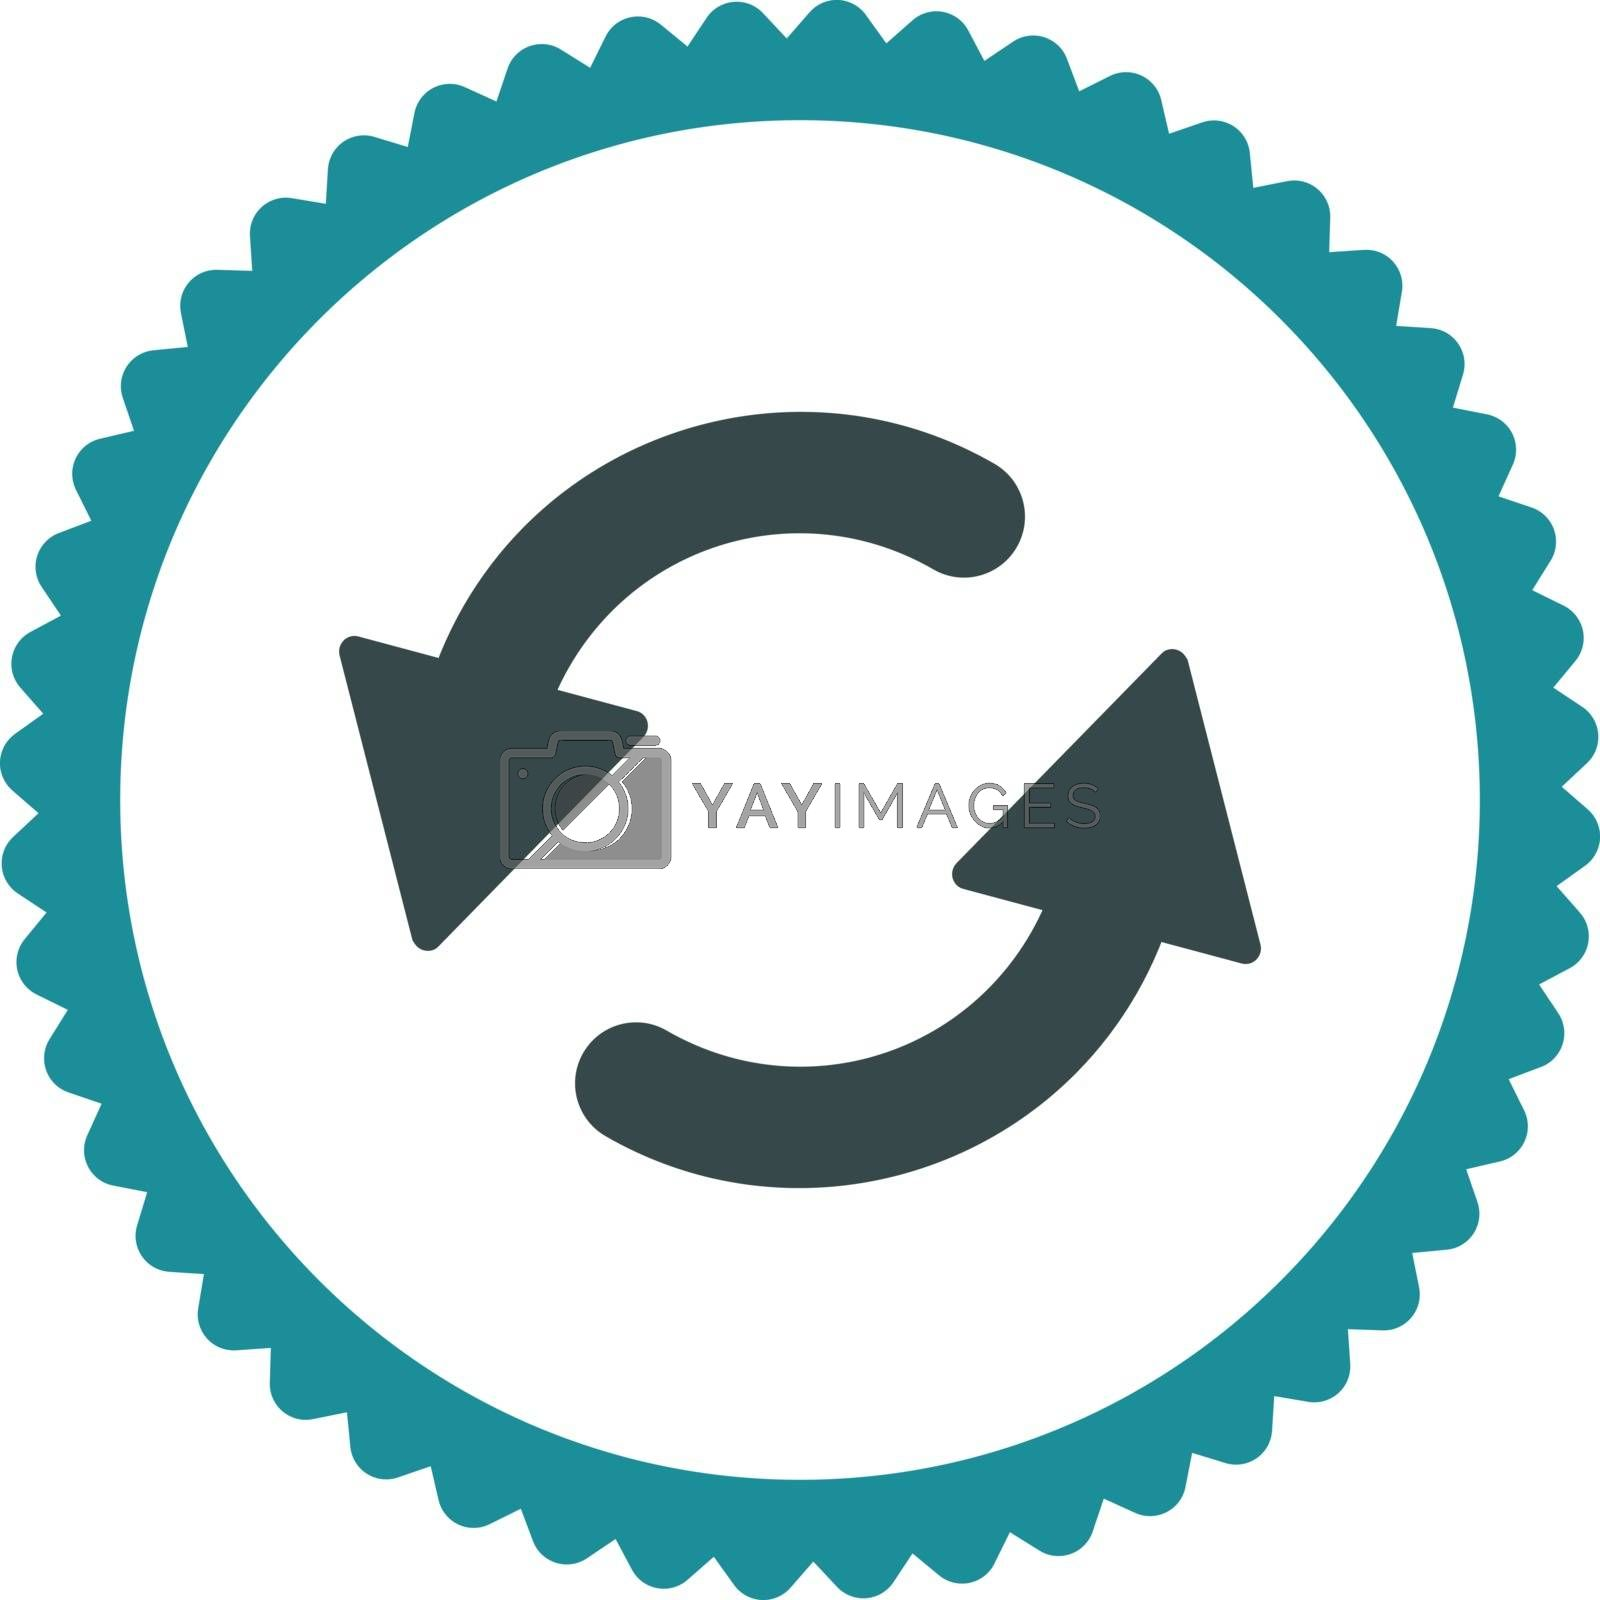 Refresh Ccw flat soft blue colors round stamp icon by Aha-Soft